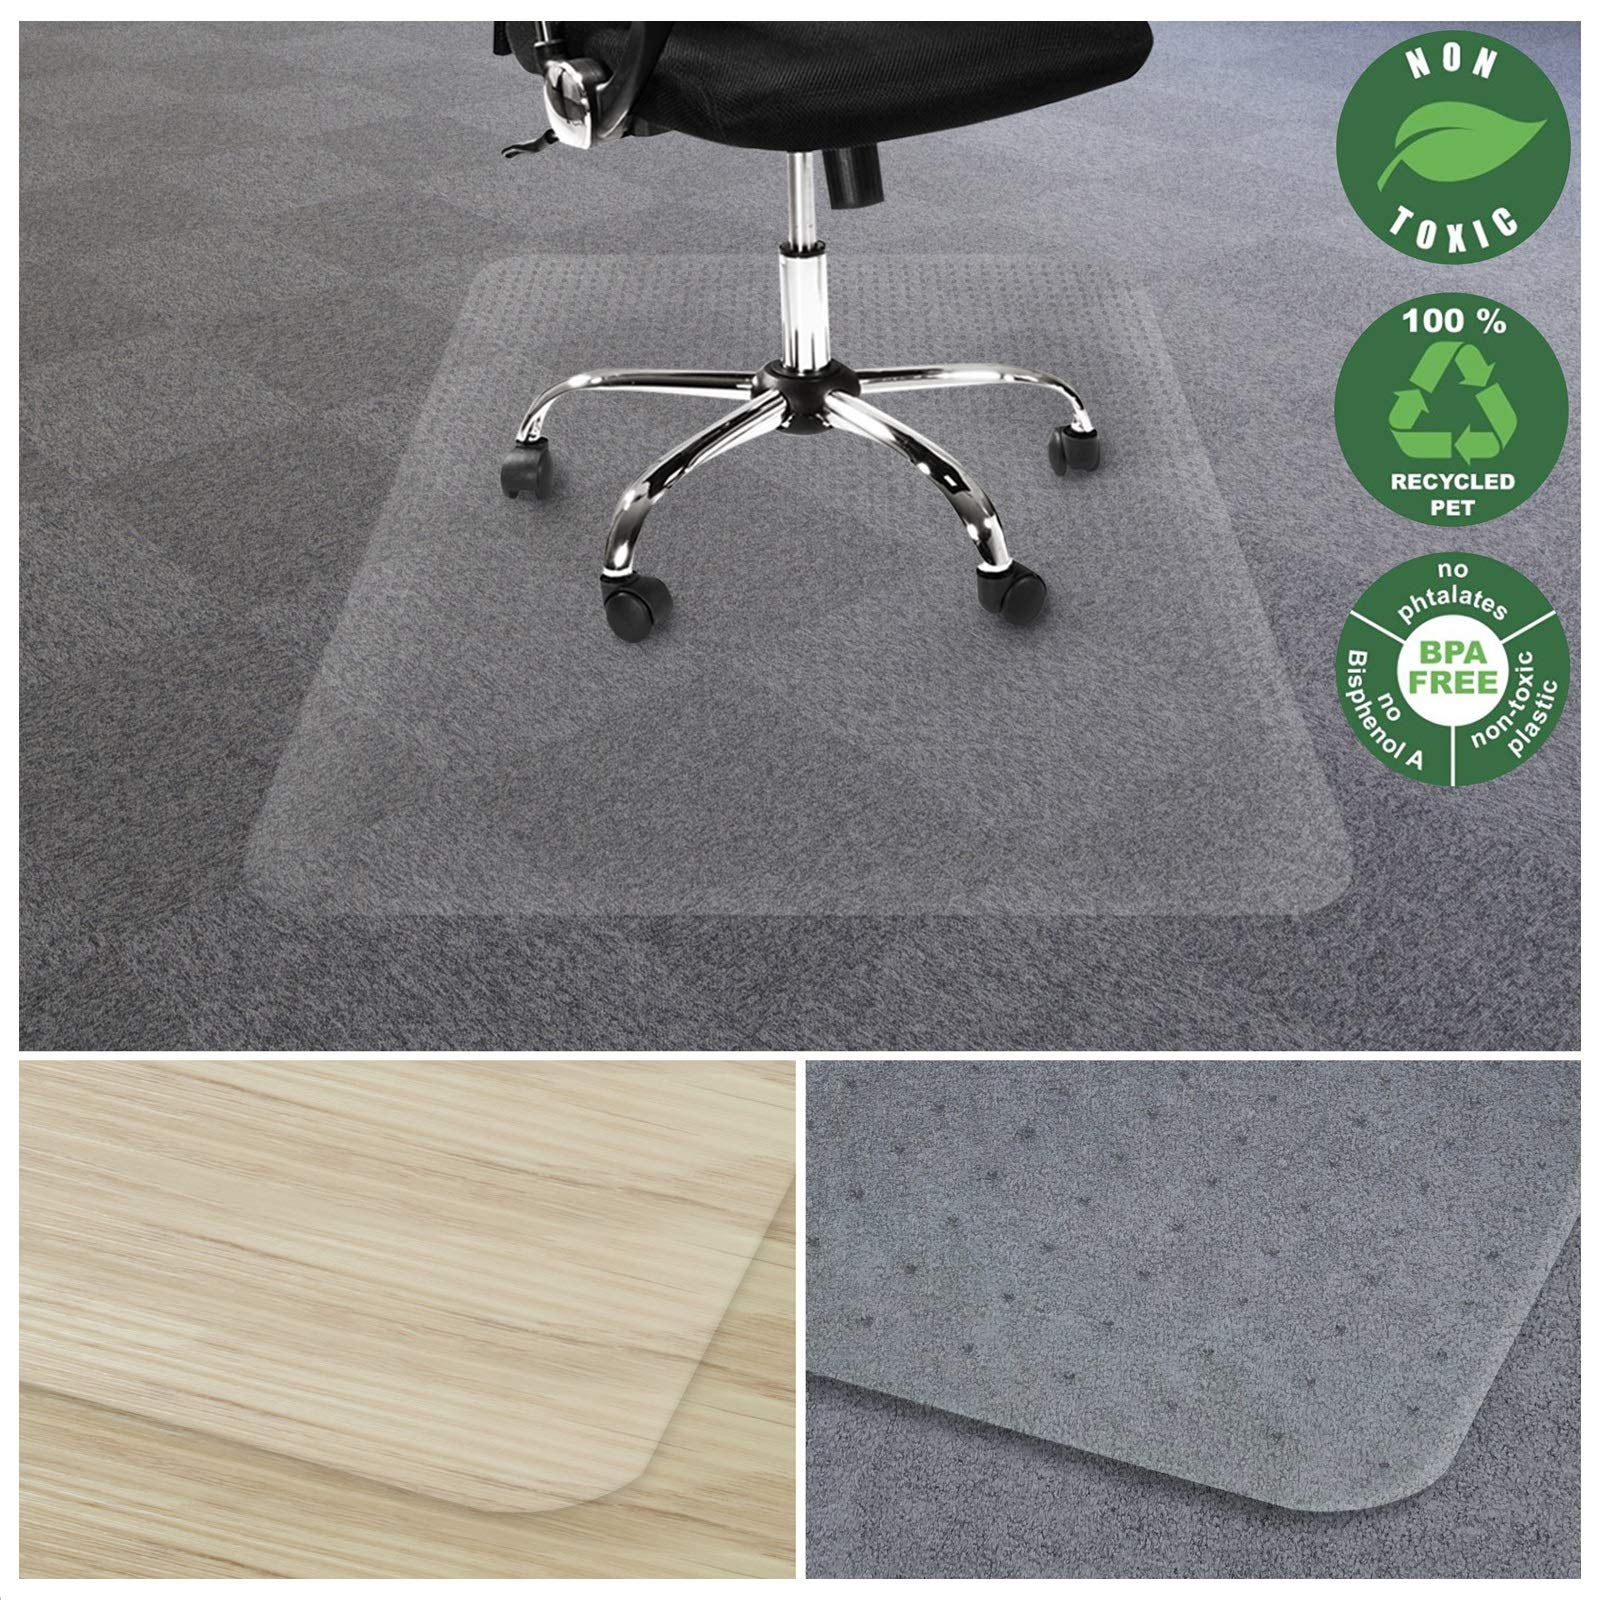 Office Marshal Chair Mat for Carpet | Eco-Friendly Series Chair Floor Protector | 100% Recycled (PET) Floor Mat for Office or Home Use | Multiple Sizes | Translucent - 48'' x 78''